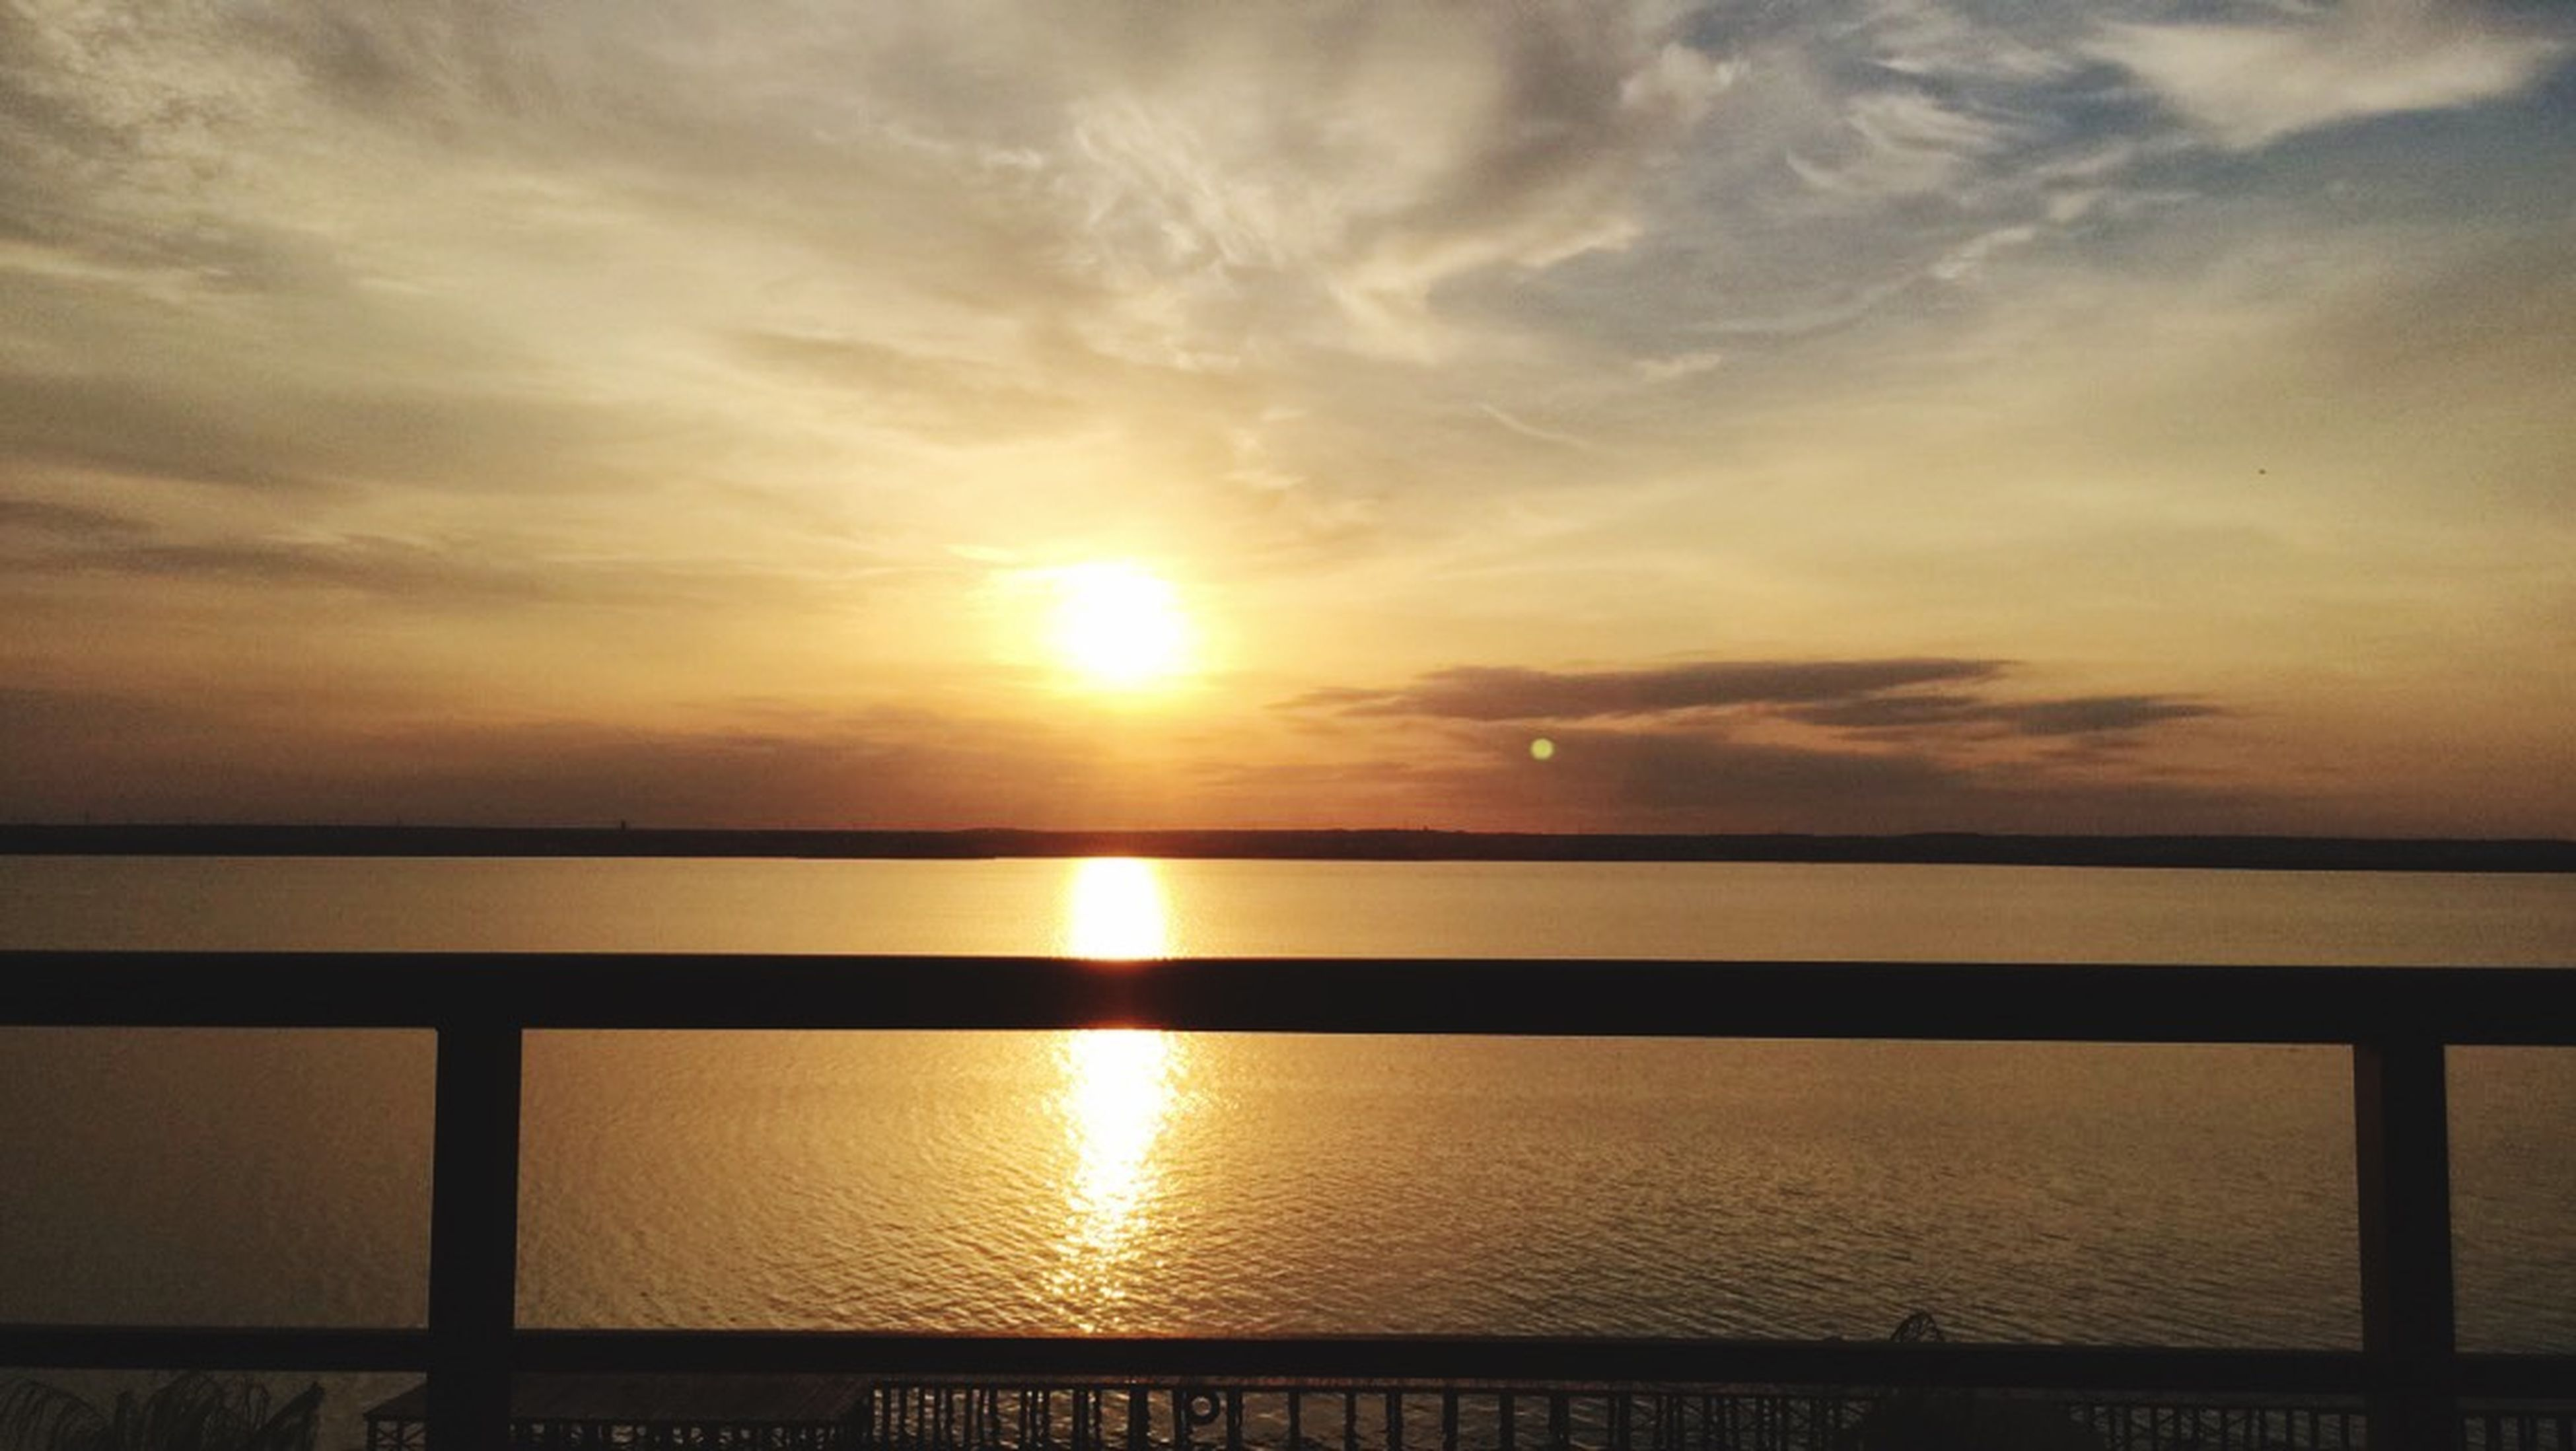 sunset, water, sun, sky, scenics, sea, tranquil scene, beauty in nature, reflection, orange color, tranquility, cloud - sky, idyllic, horizon over water, nature, silhouette, sunlight, cloud, railing, outdoors